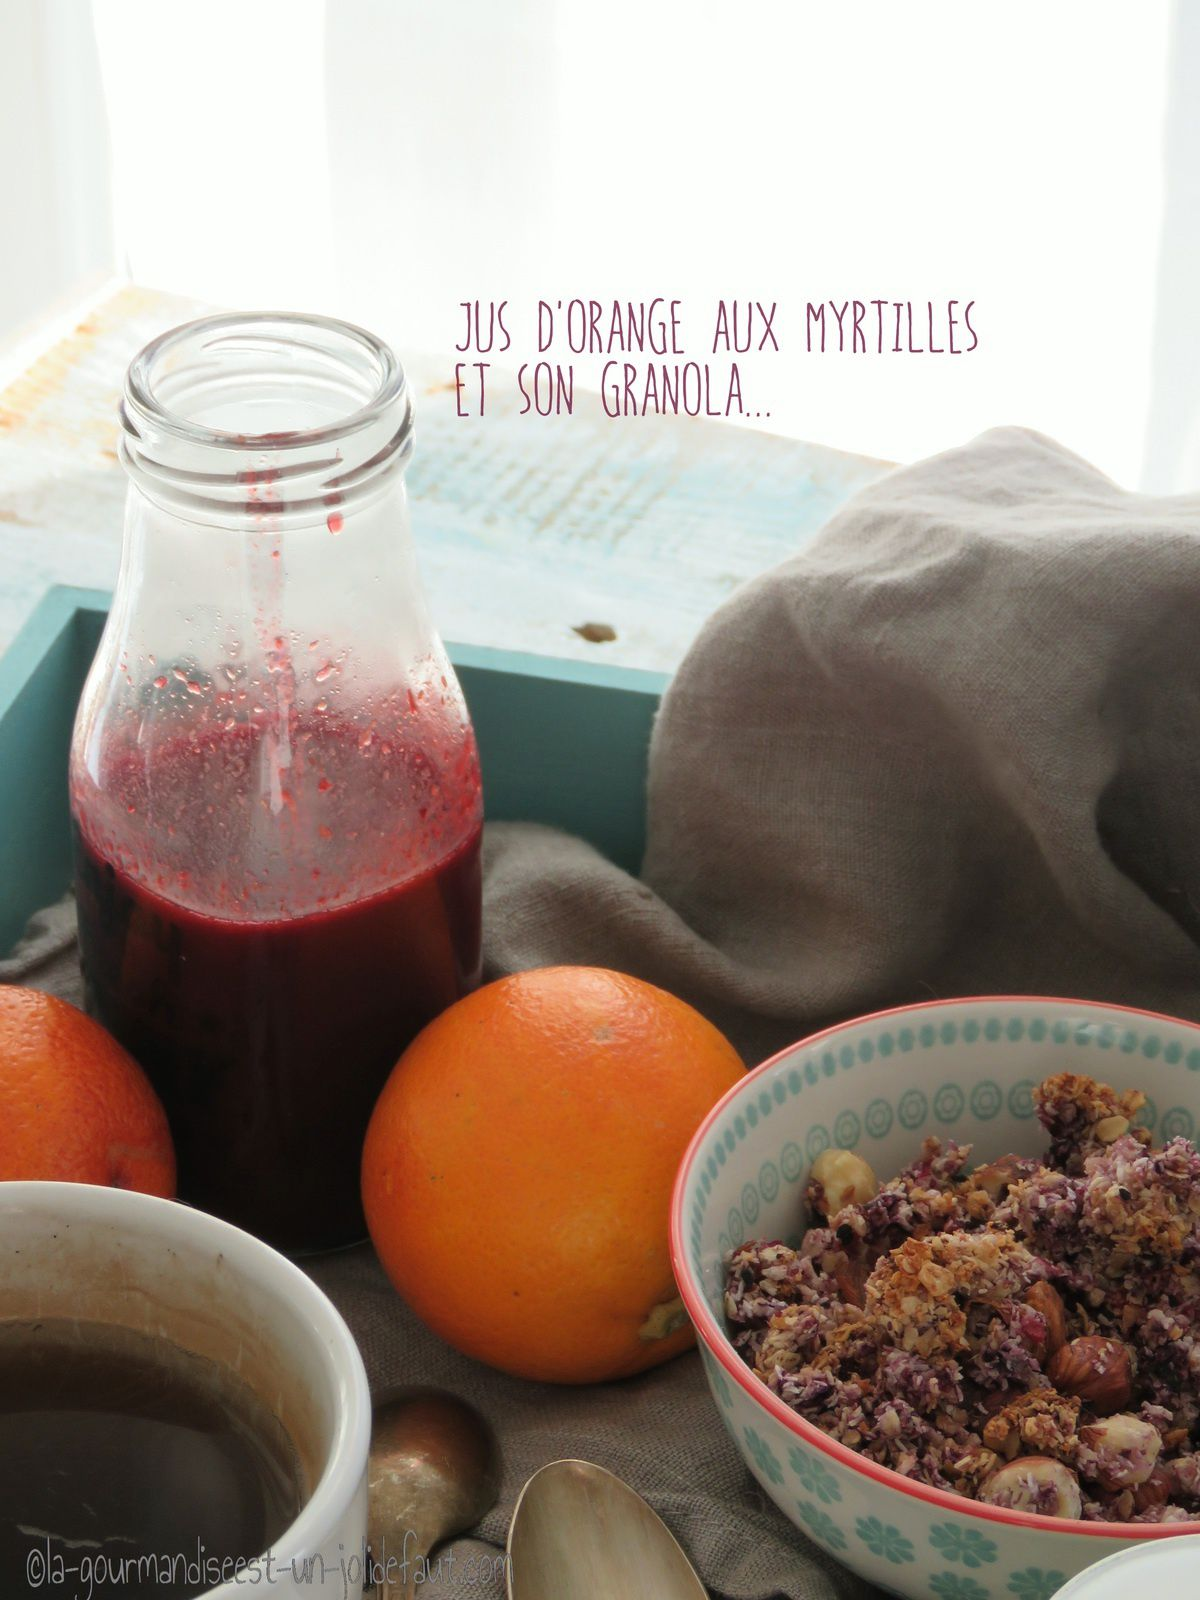 Jus d'orange sanguine aux myrtilles et son granola anti gaspi